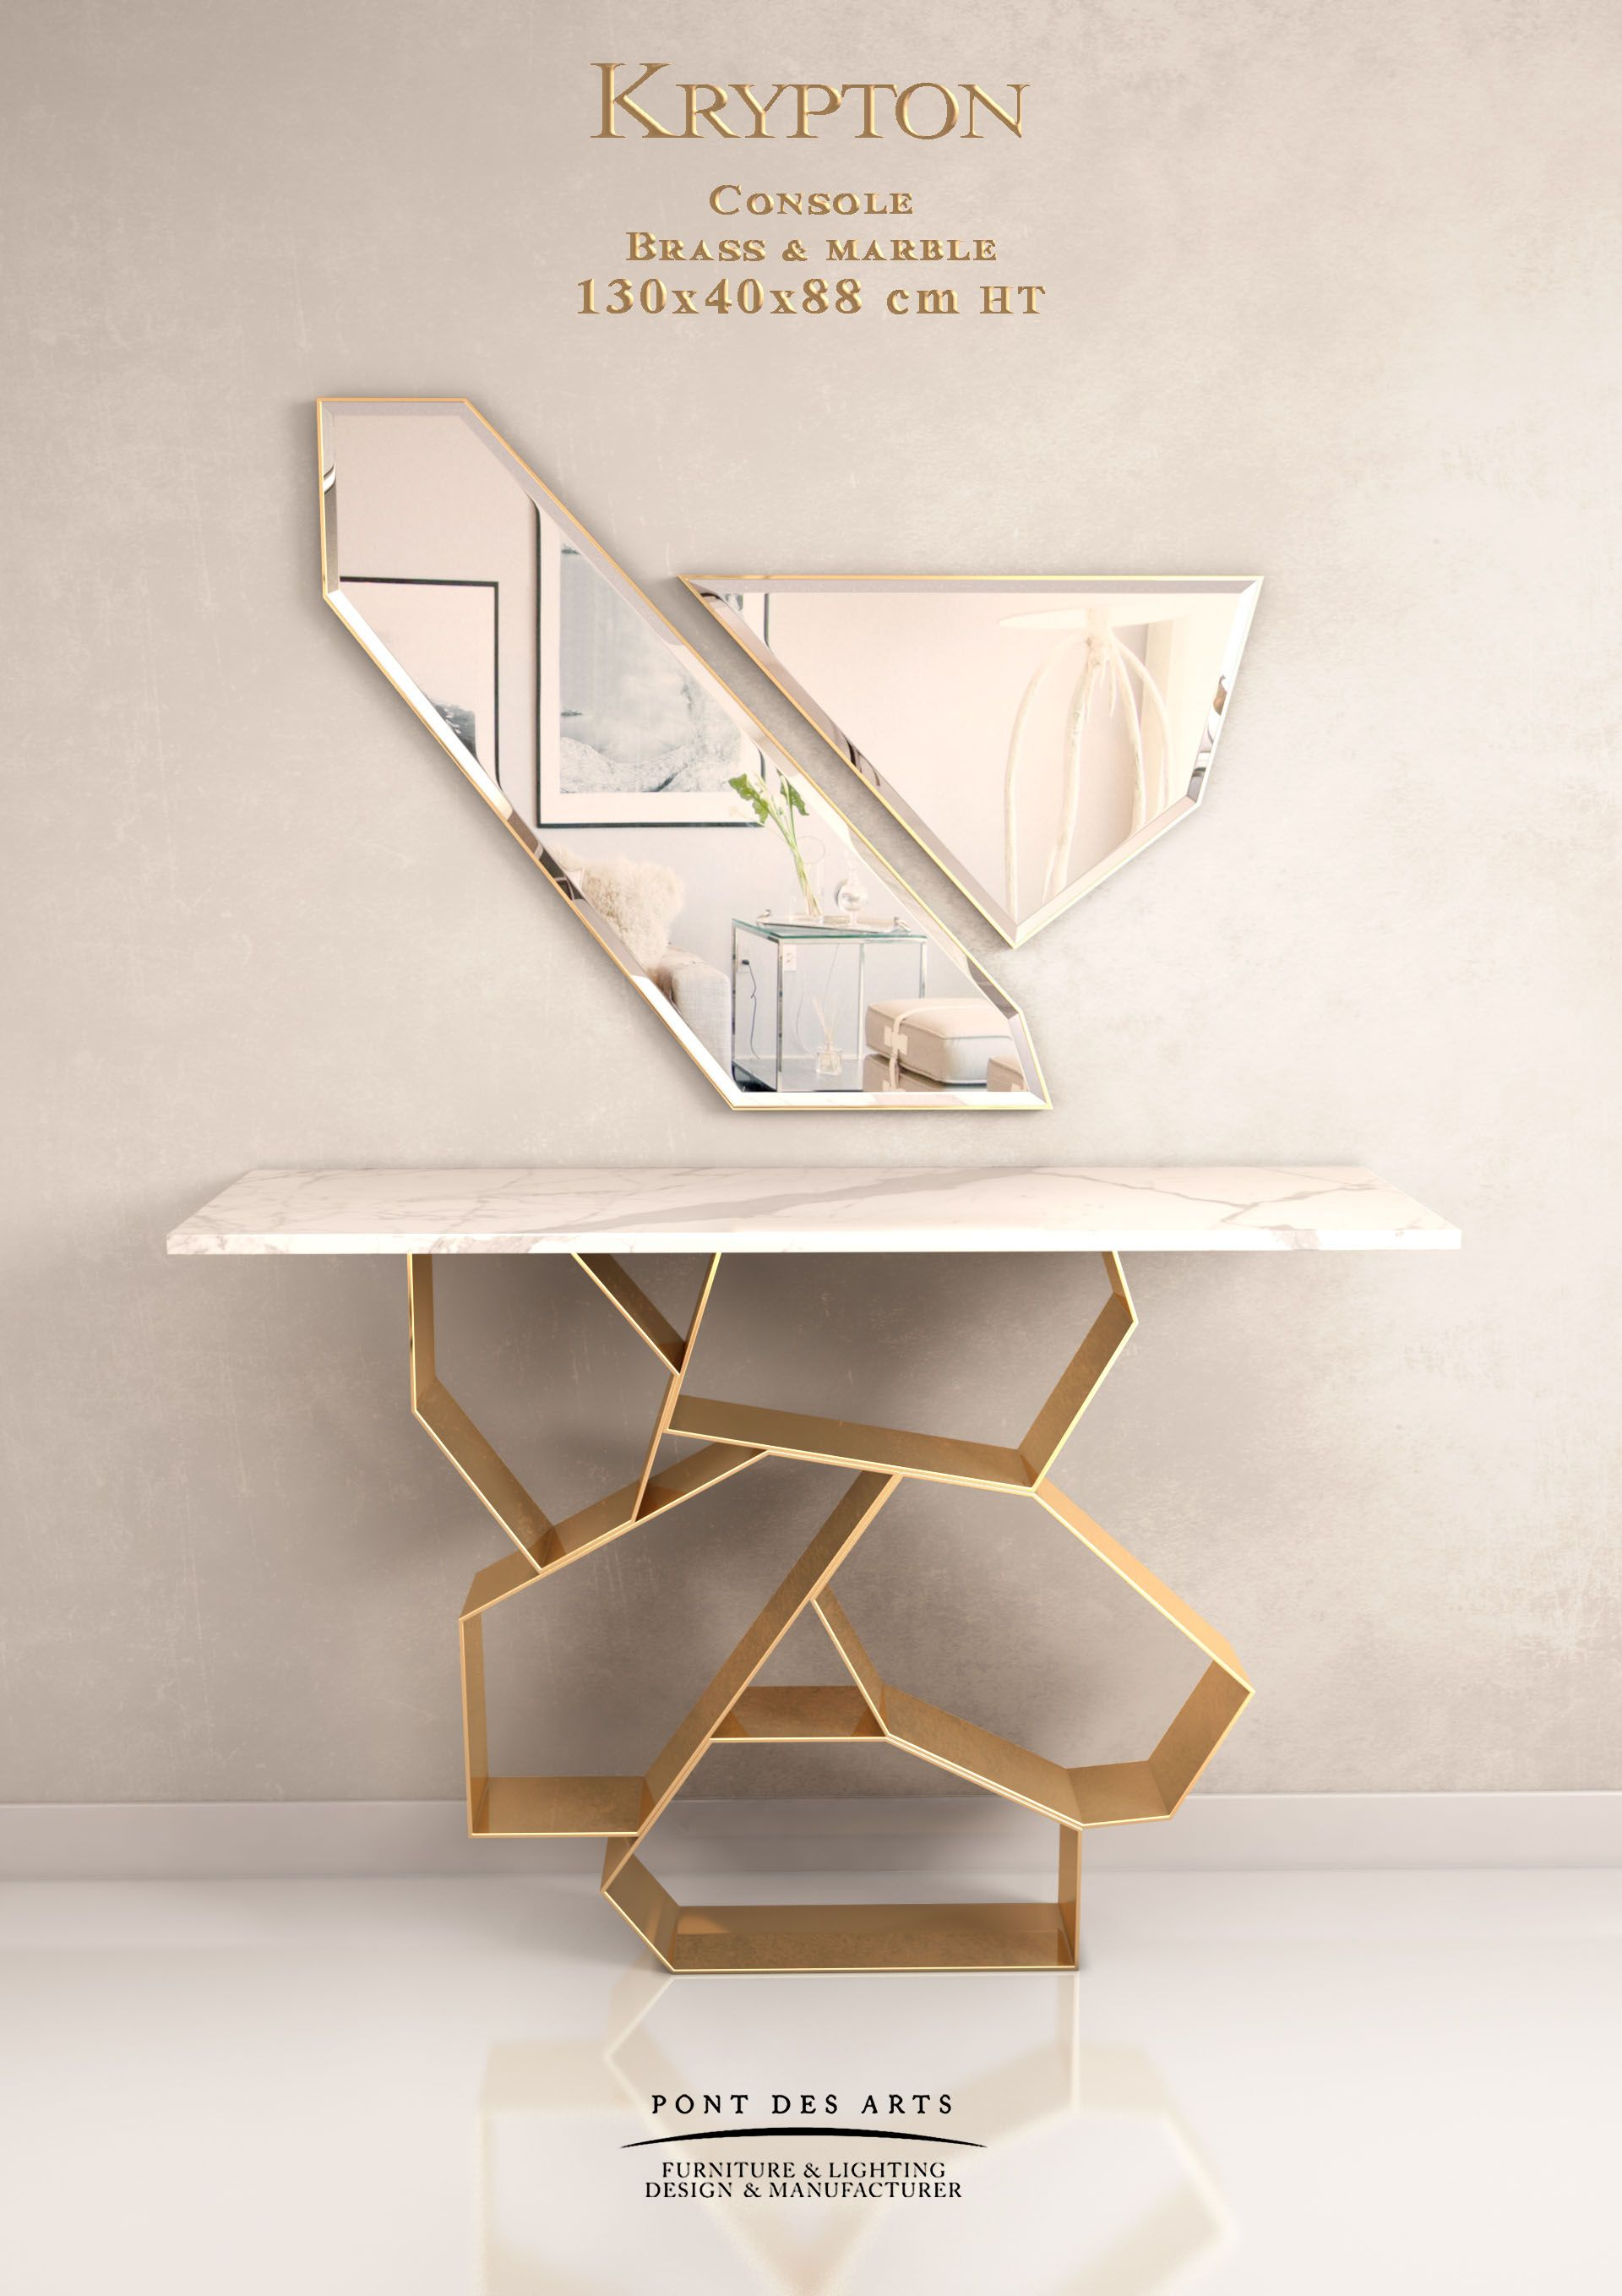 Krypton Console Designer Monzer Hammoud Pont Des Arts Studio Paris Modern Console Tables Interior Furniture Decor